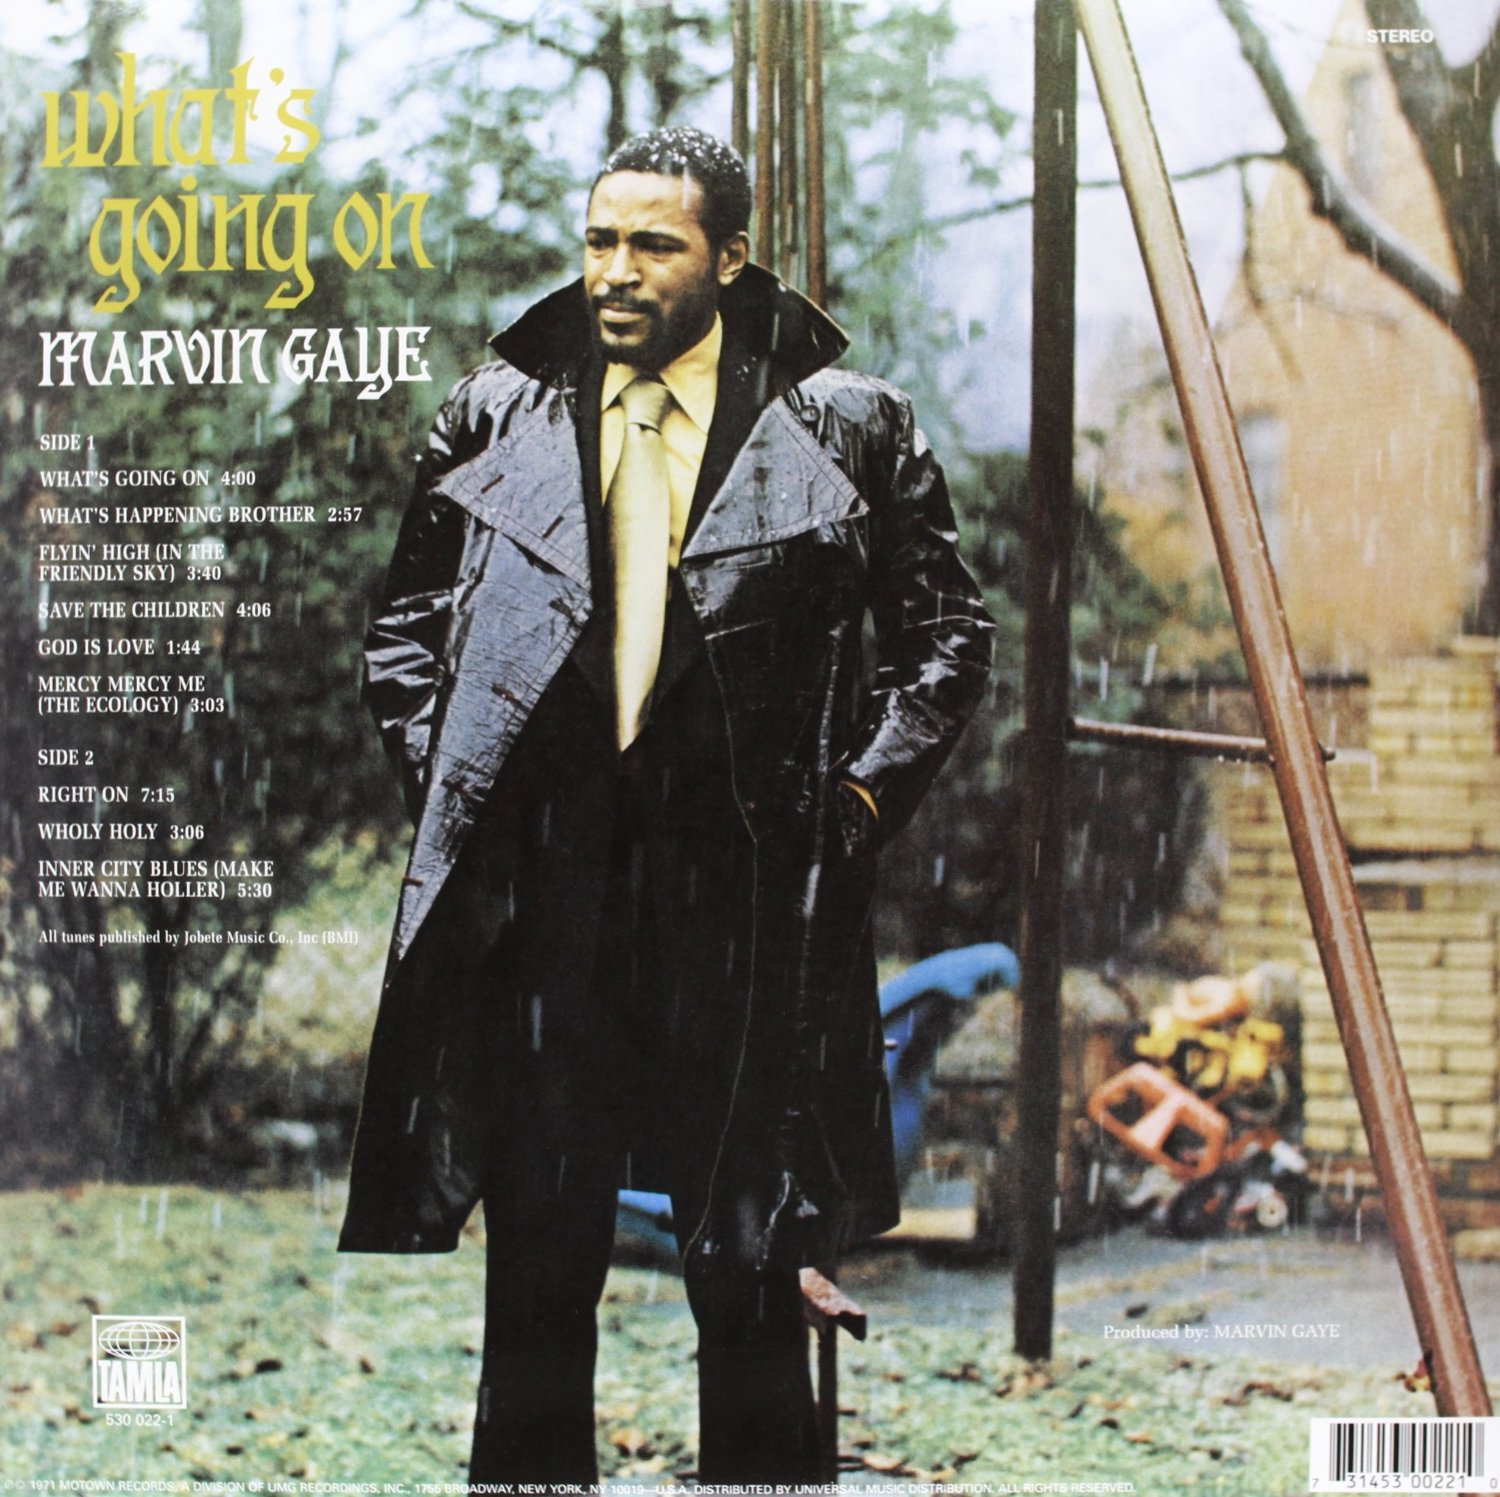 MARVIN GAYE - What's going on_retro